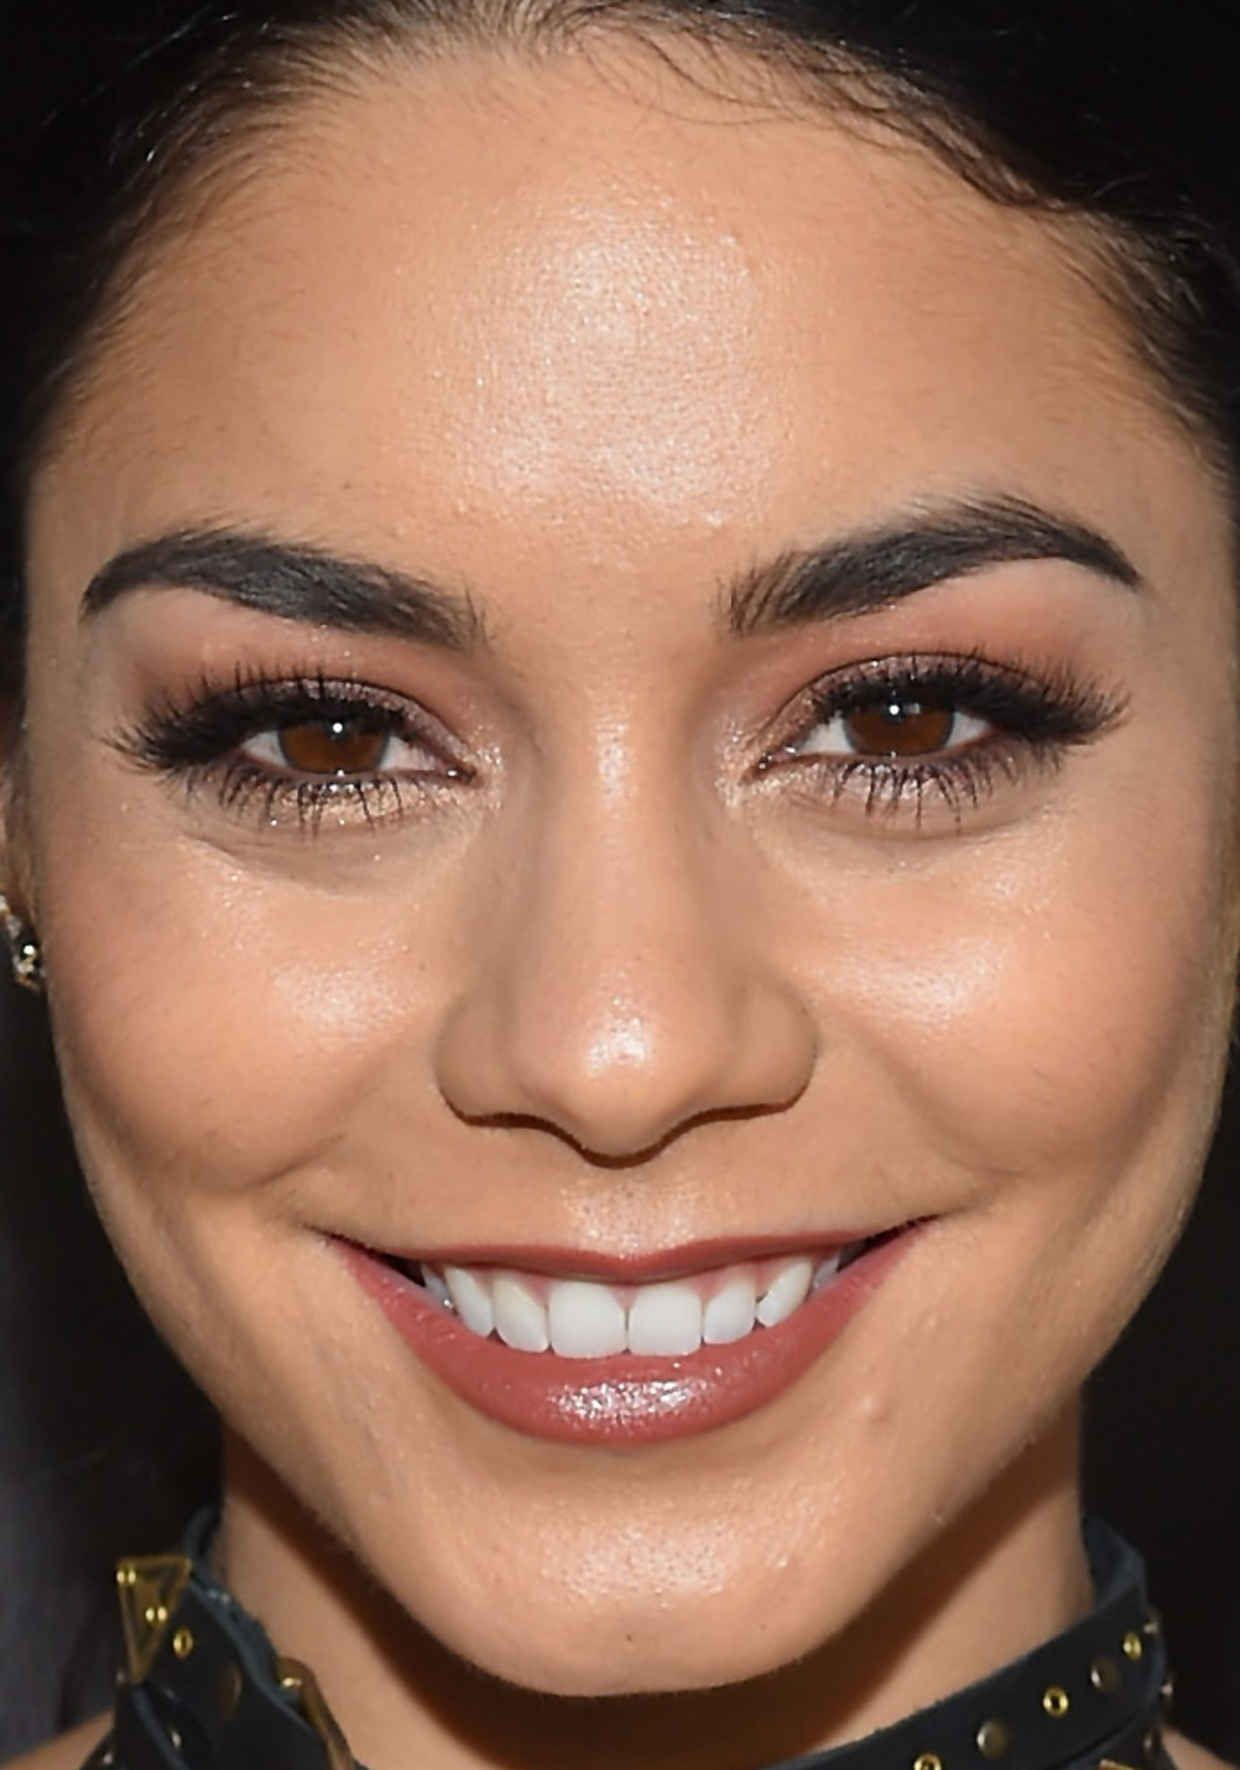 The Top 10: Best Celebrity Eyebrows – My hair and beauty